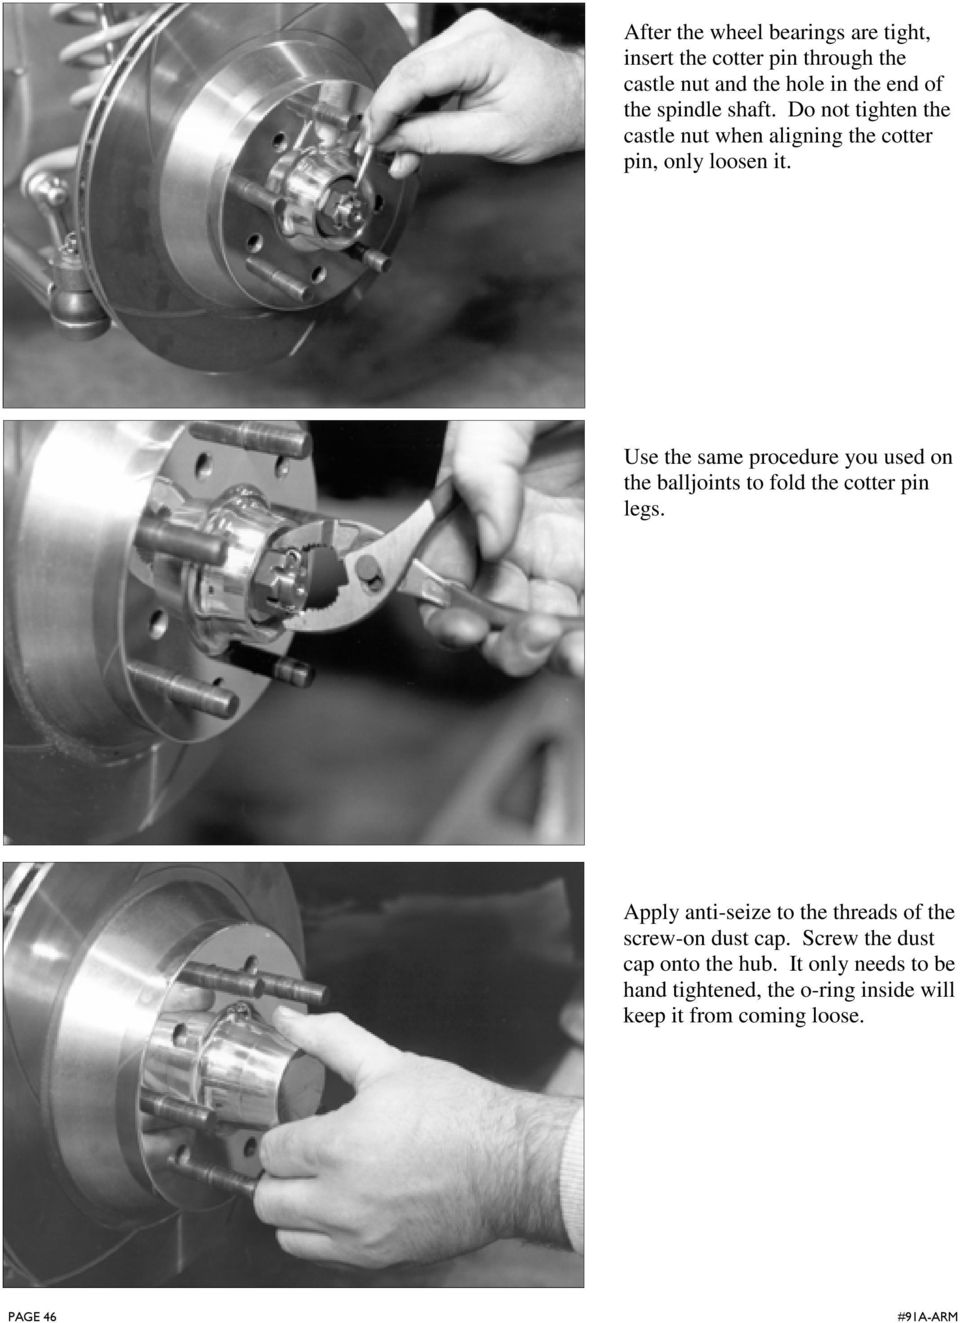 Use the same procedure you used on the balljoints to fold the cotter pin legs.